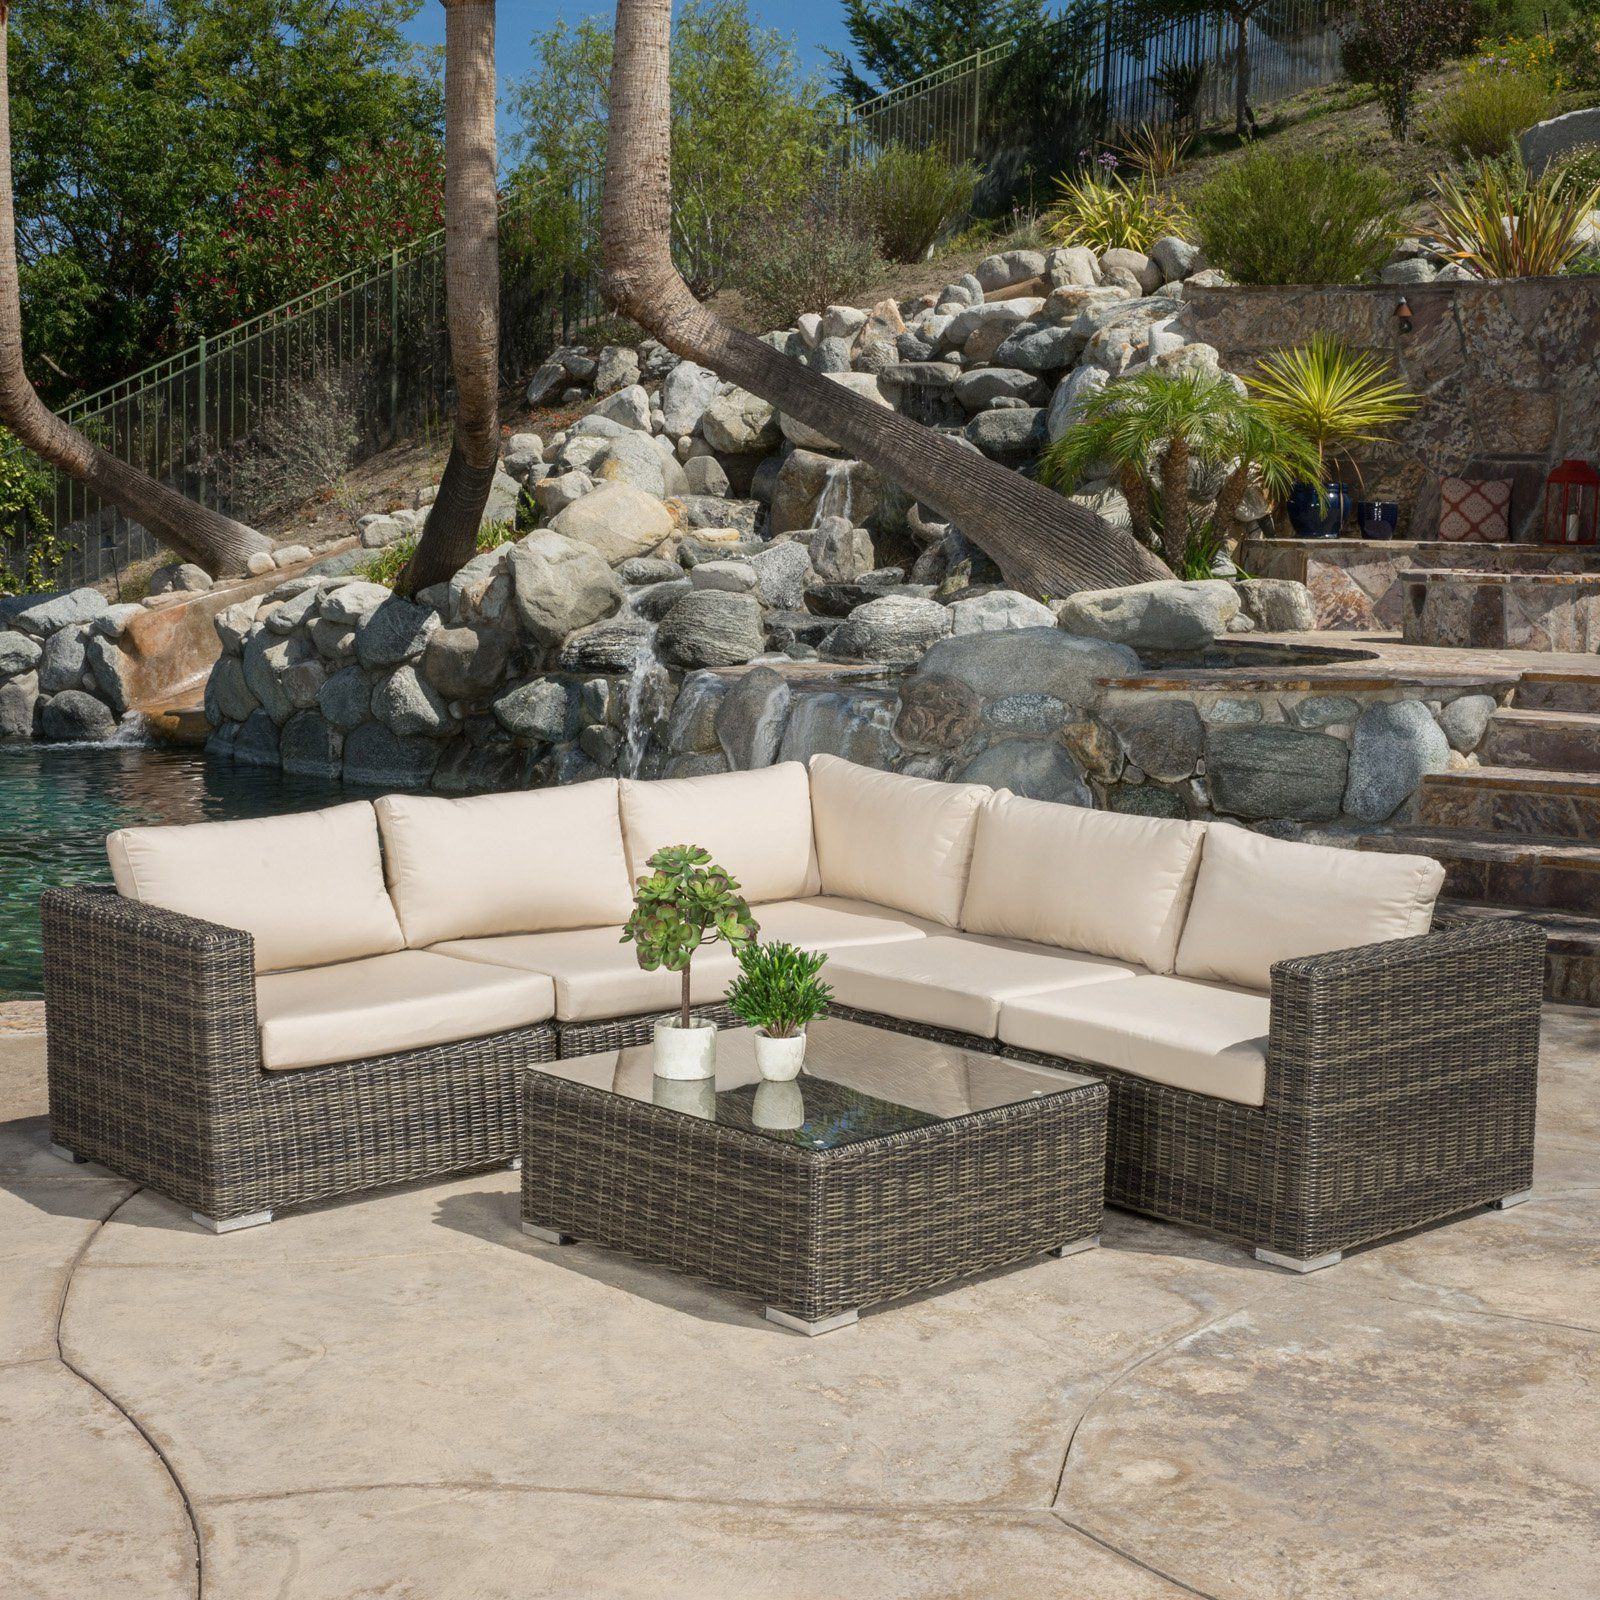 Best Selling Home Zucatan 6 Piece Conversation Set With Cushion